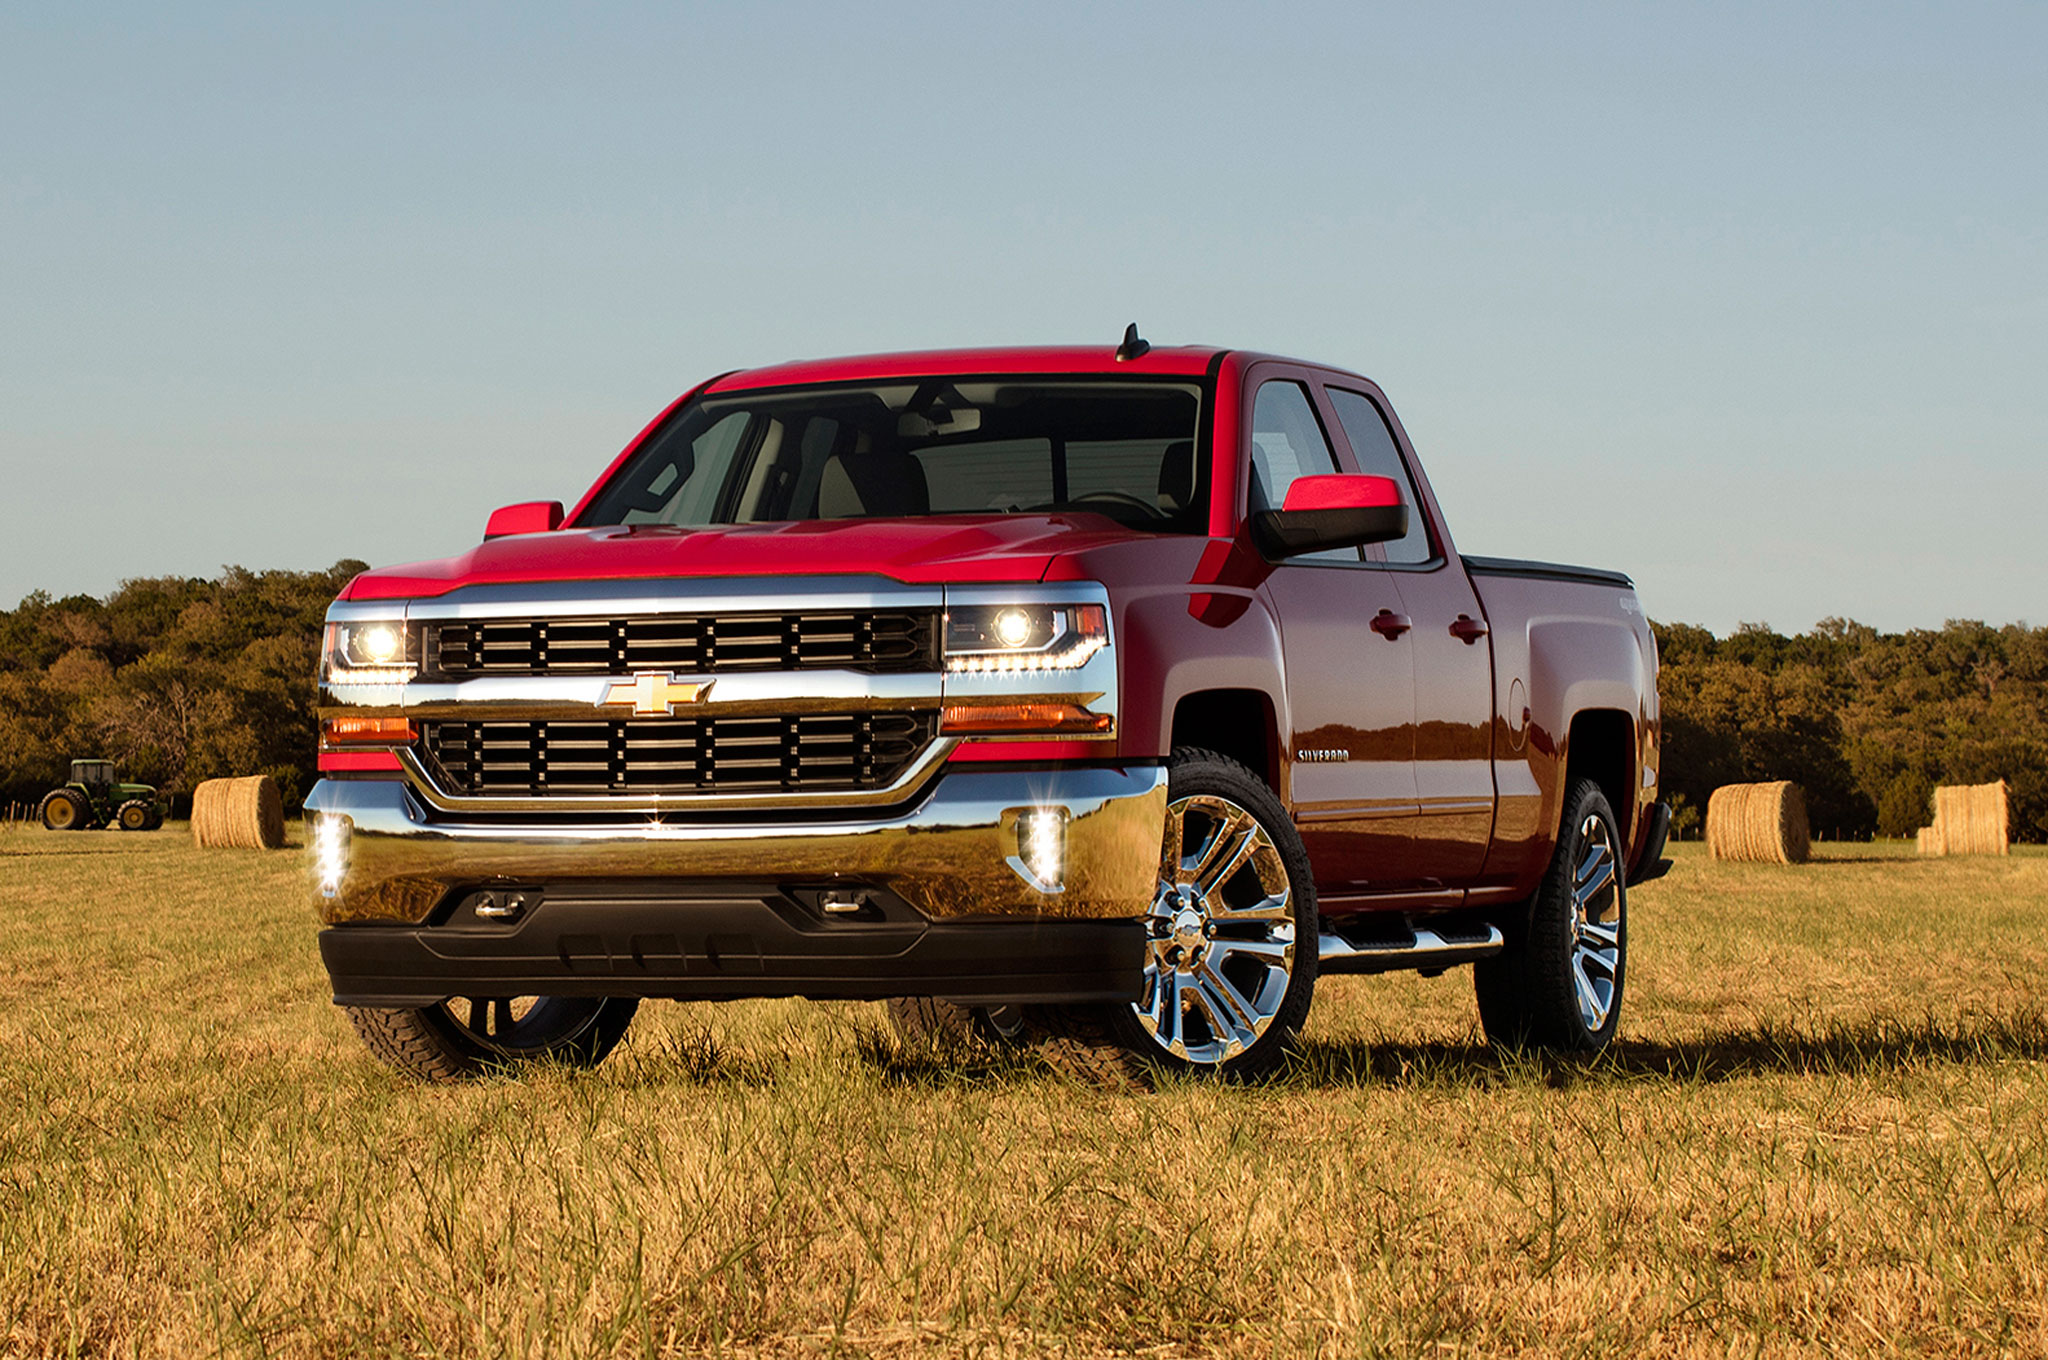 2016 Chevrolet Silverado Offers 8-Speed Automatic with 5.3-Liter V-8